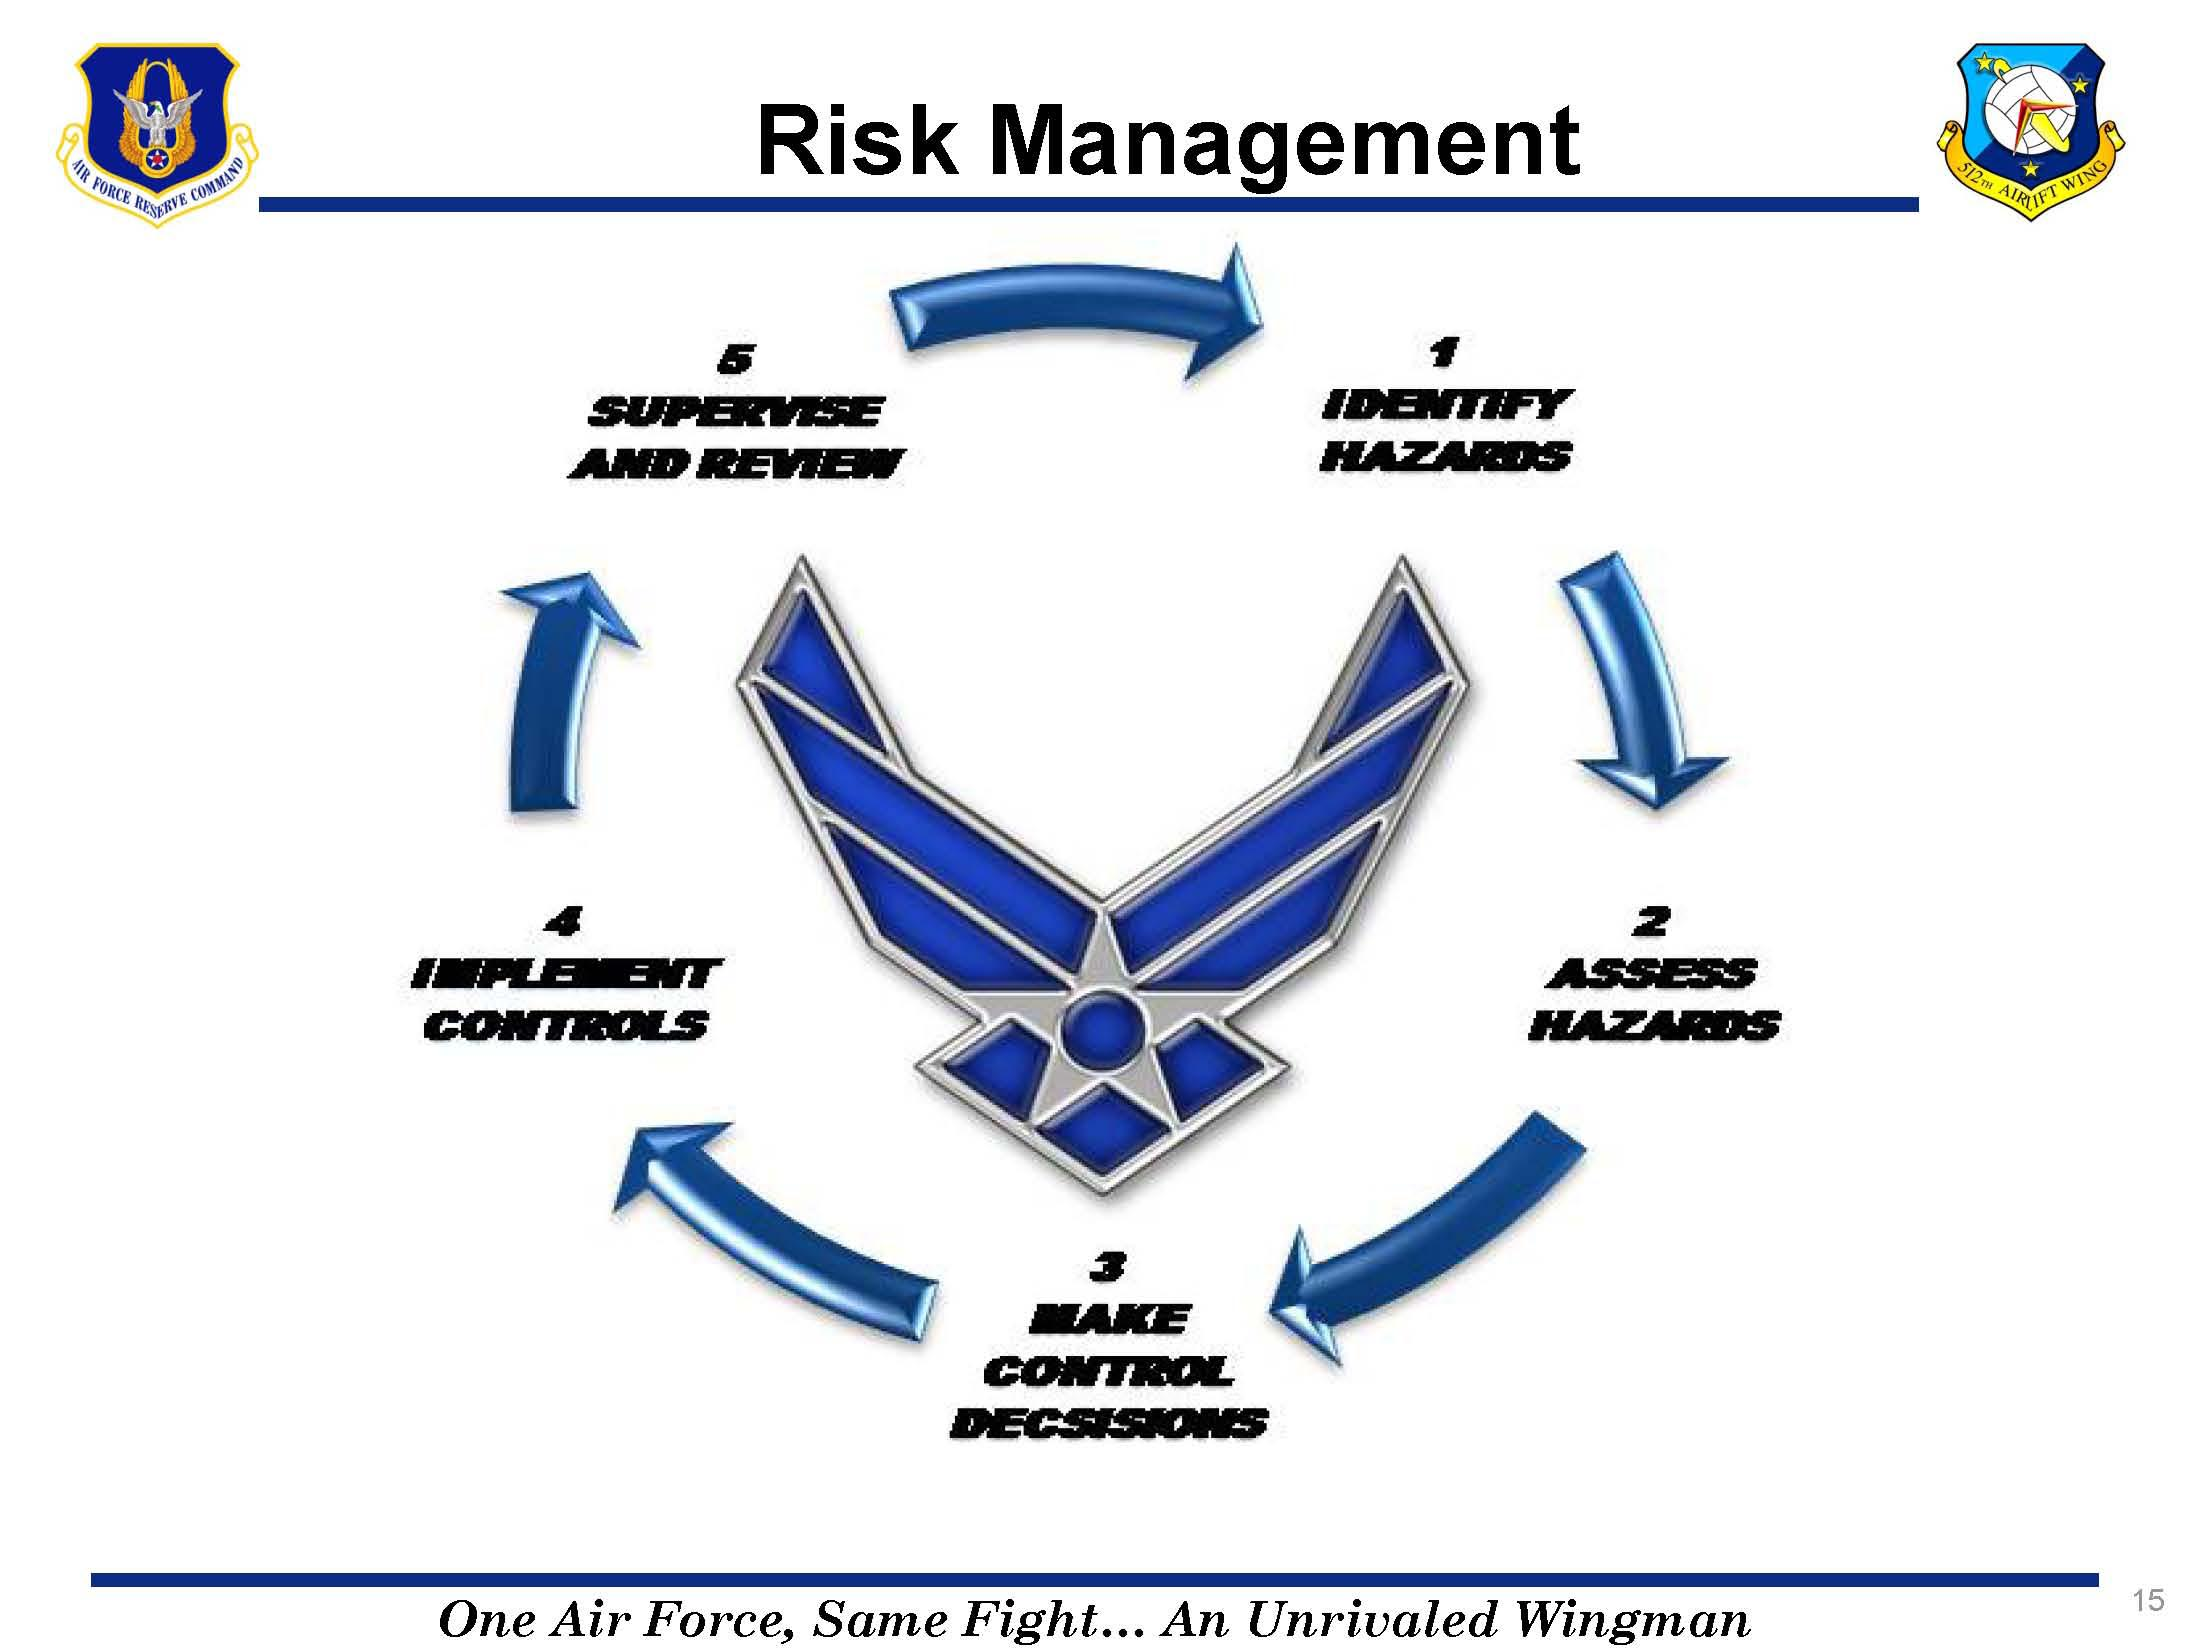 develop health and safety and risk management policies essay Title: developing a risk management plan author: ecri institute subject: webinar handout keywords: risk management plan ftca created date: 20100323114117z.